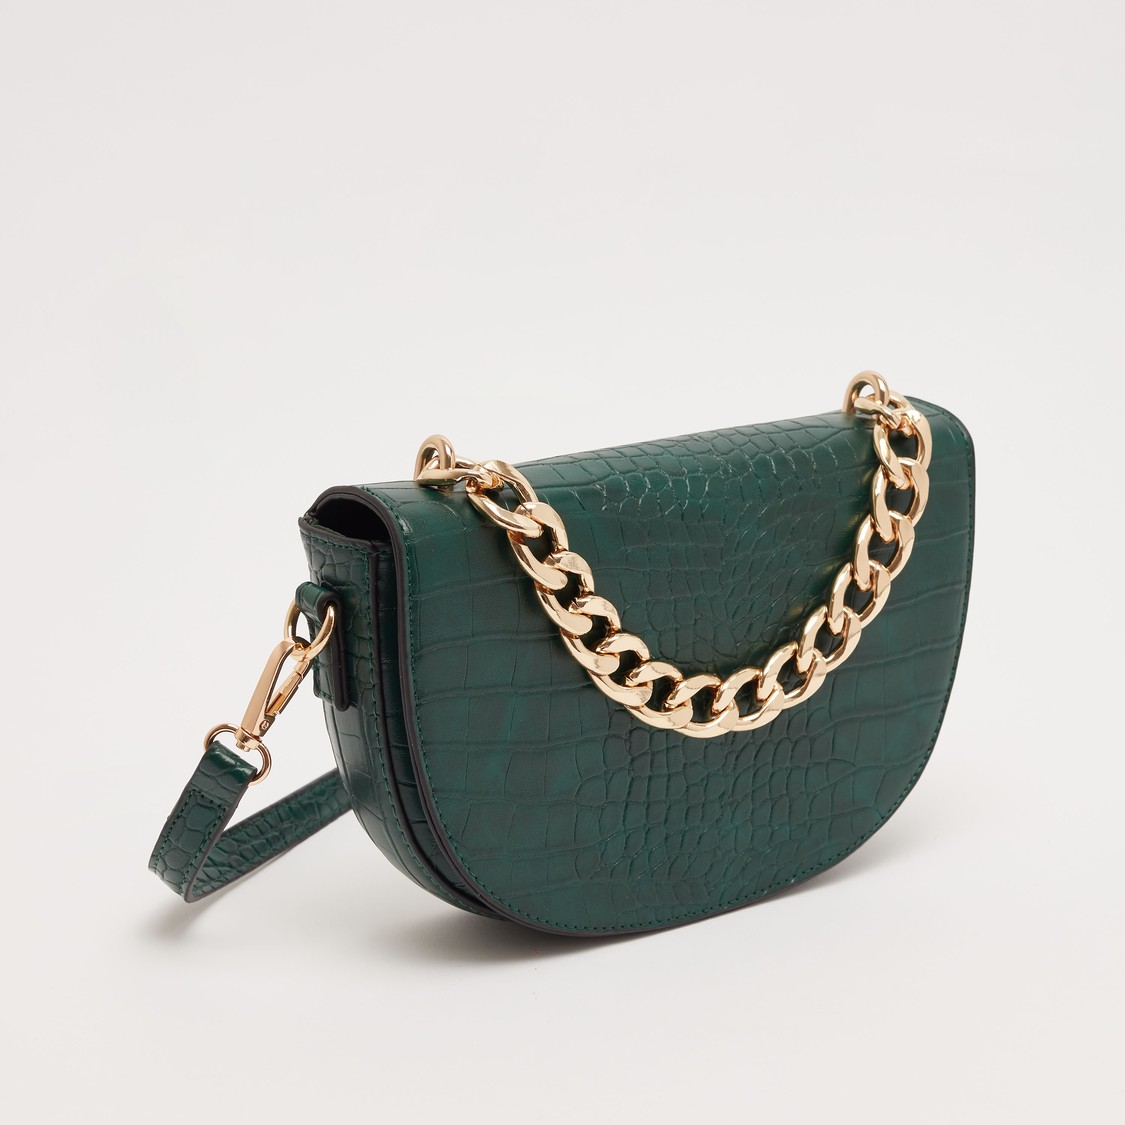 Textured Crossbody Bag with Metallic Chain Accent